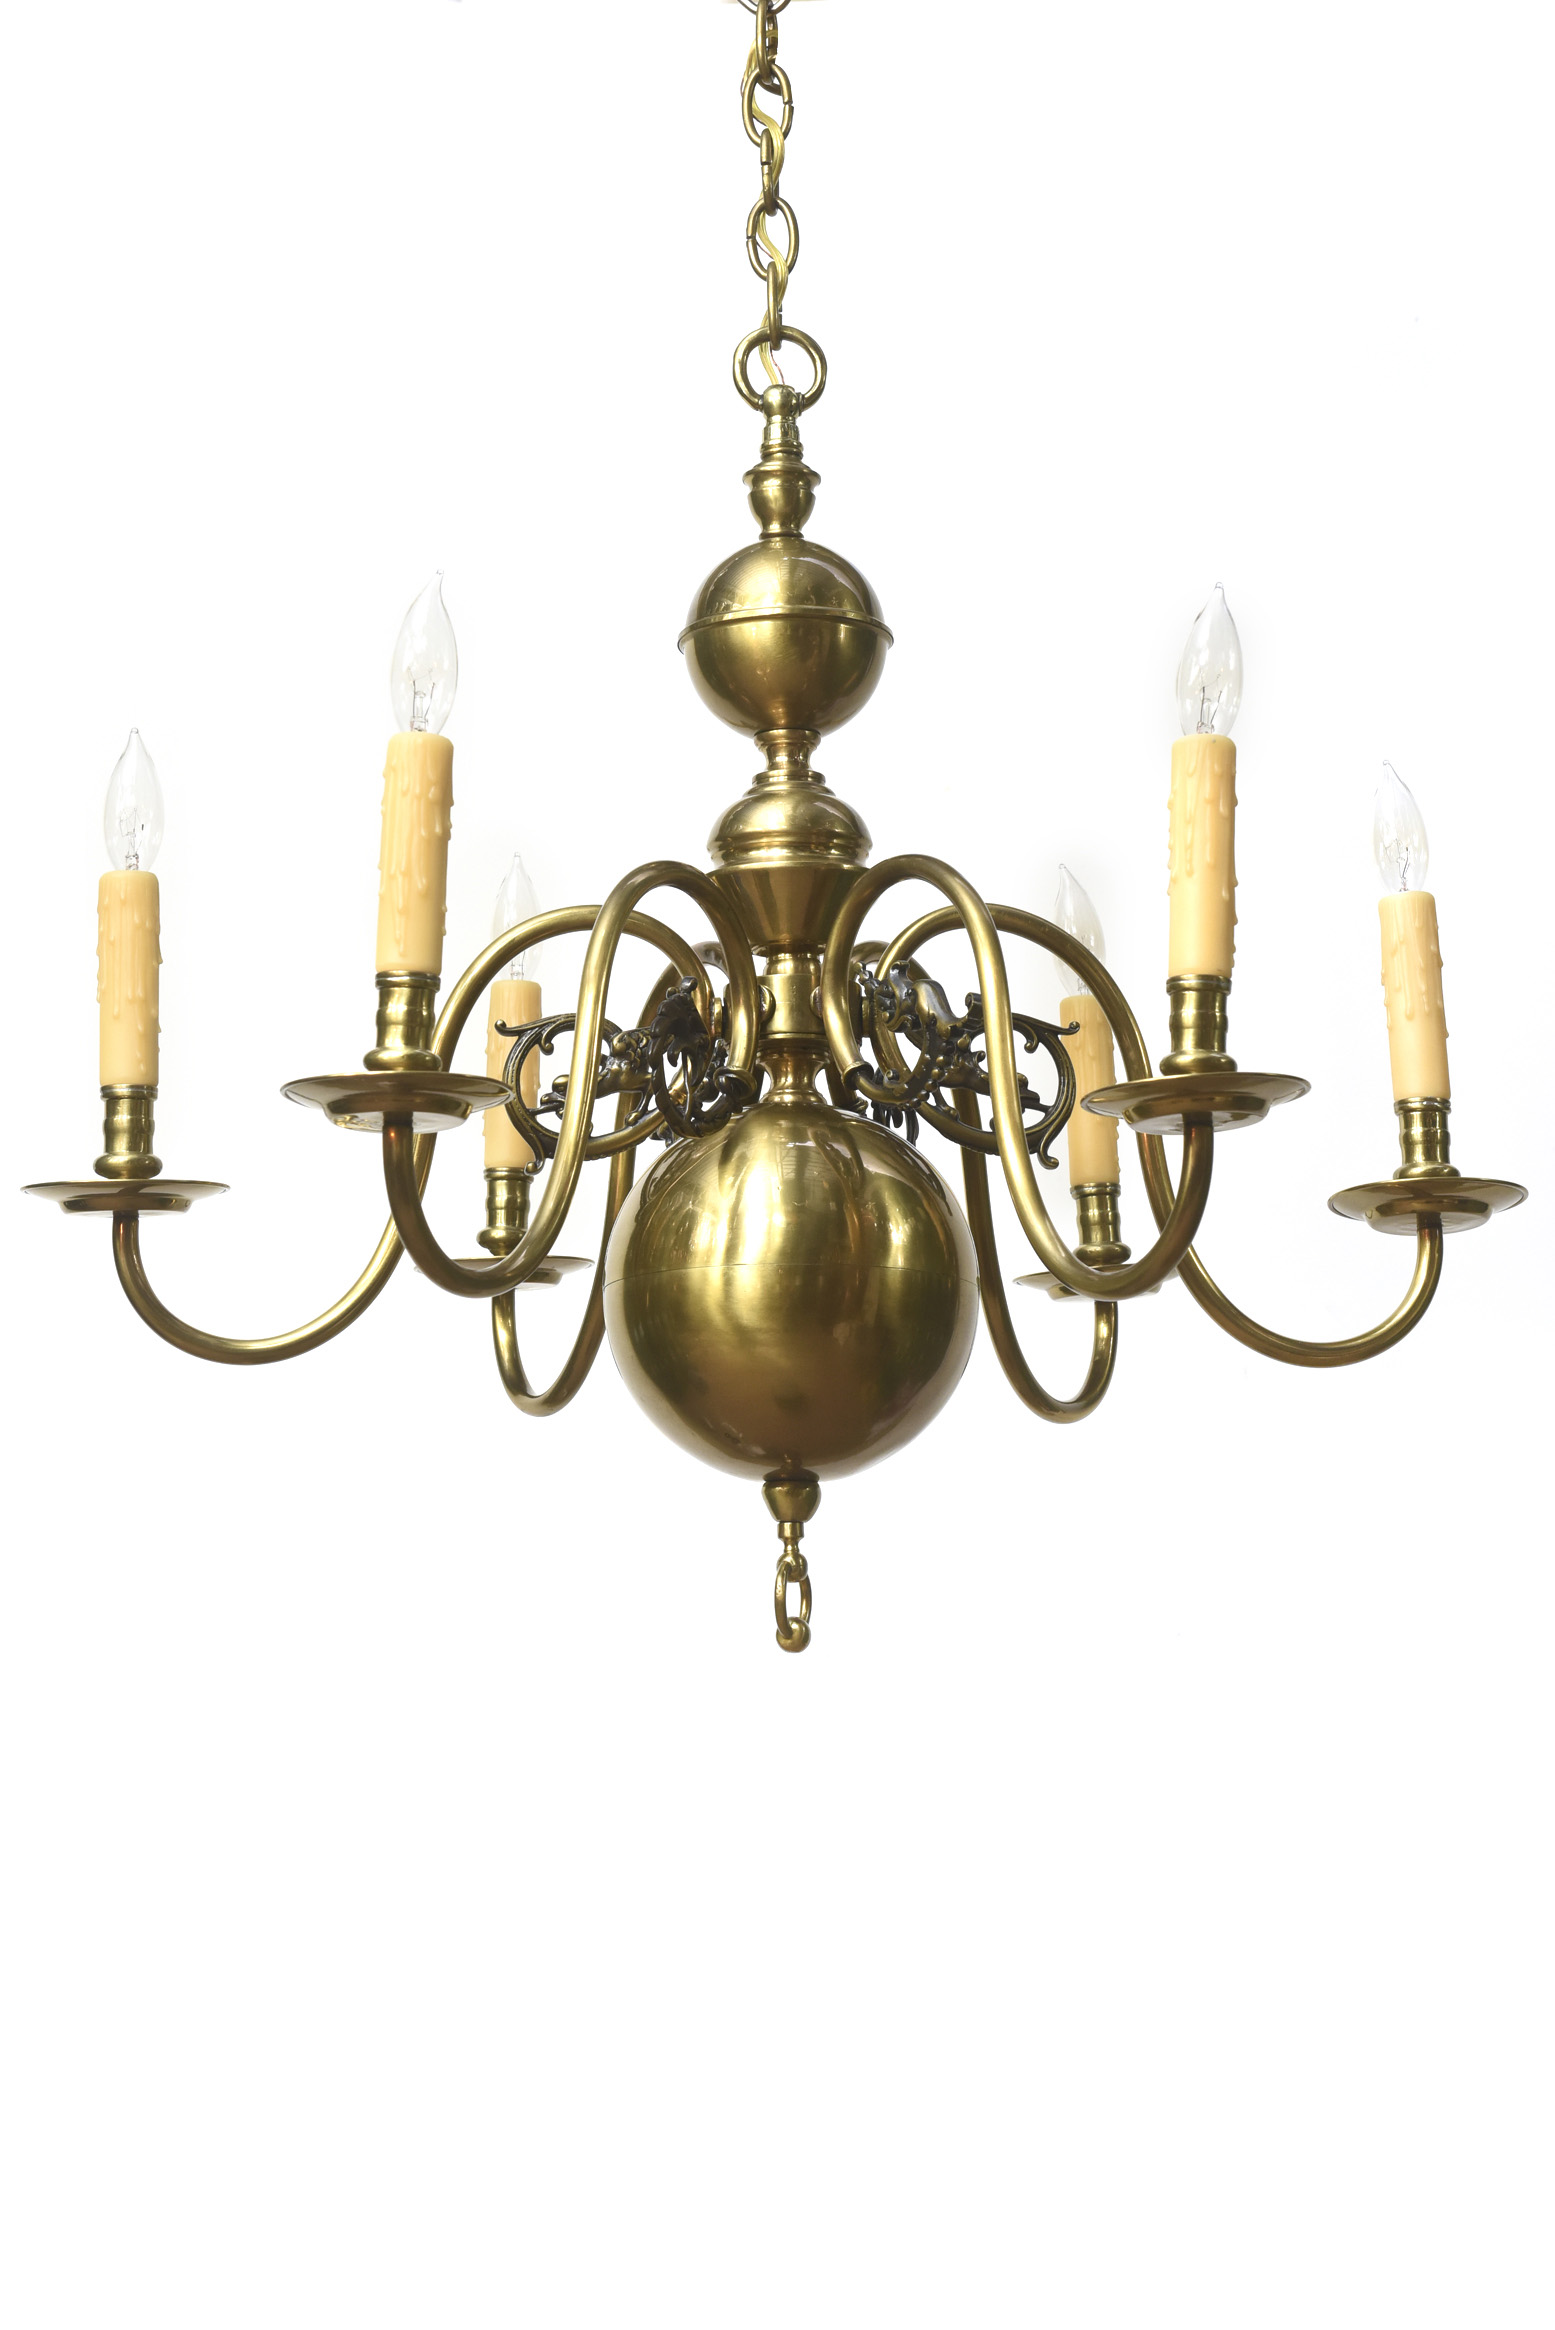 Six Arm Continental Colonial Chandelier